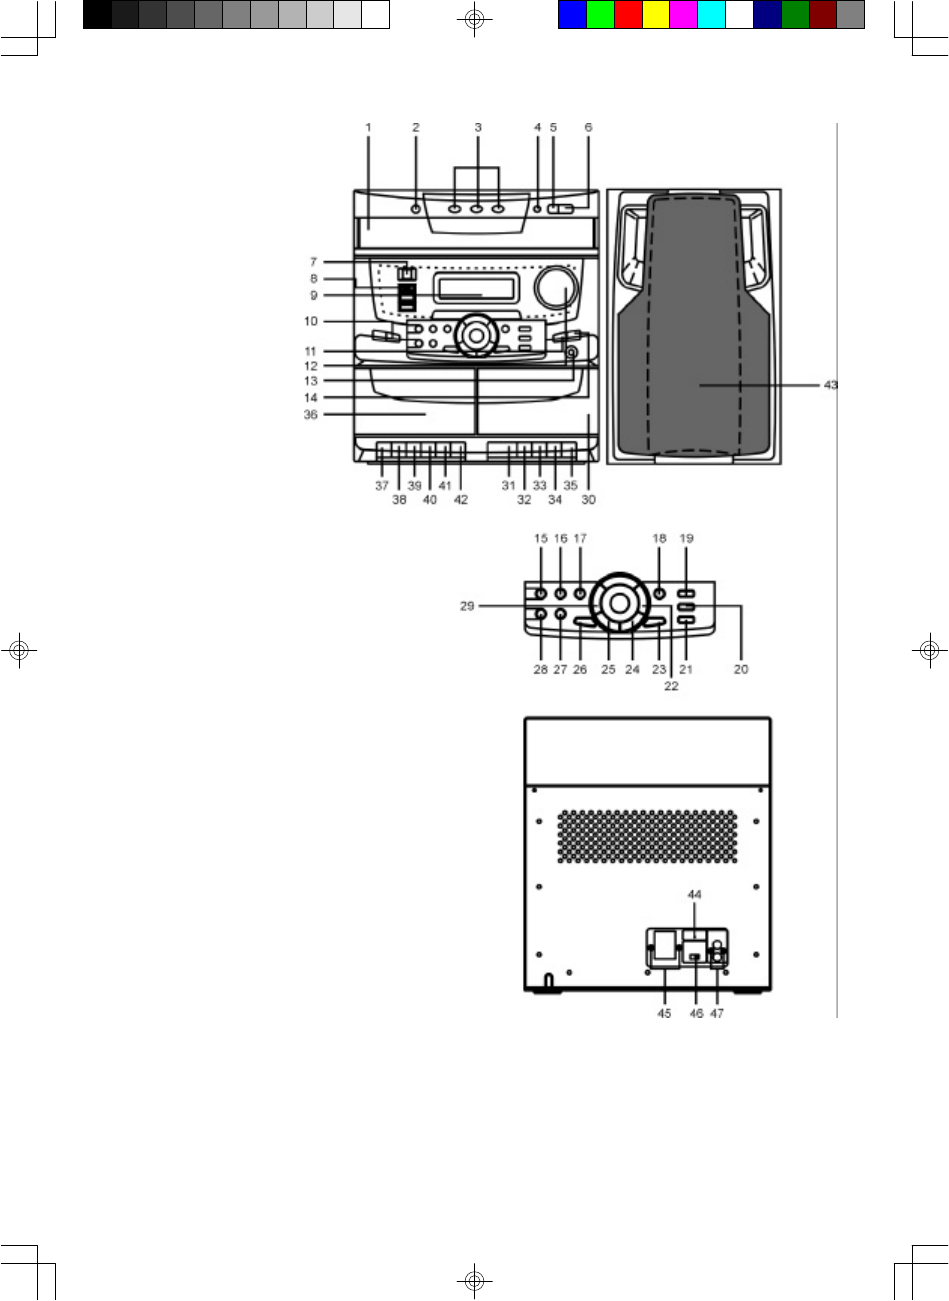 Page 6 of Memorex Stereo System MX5310 User Guide